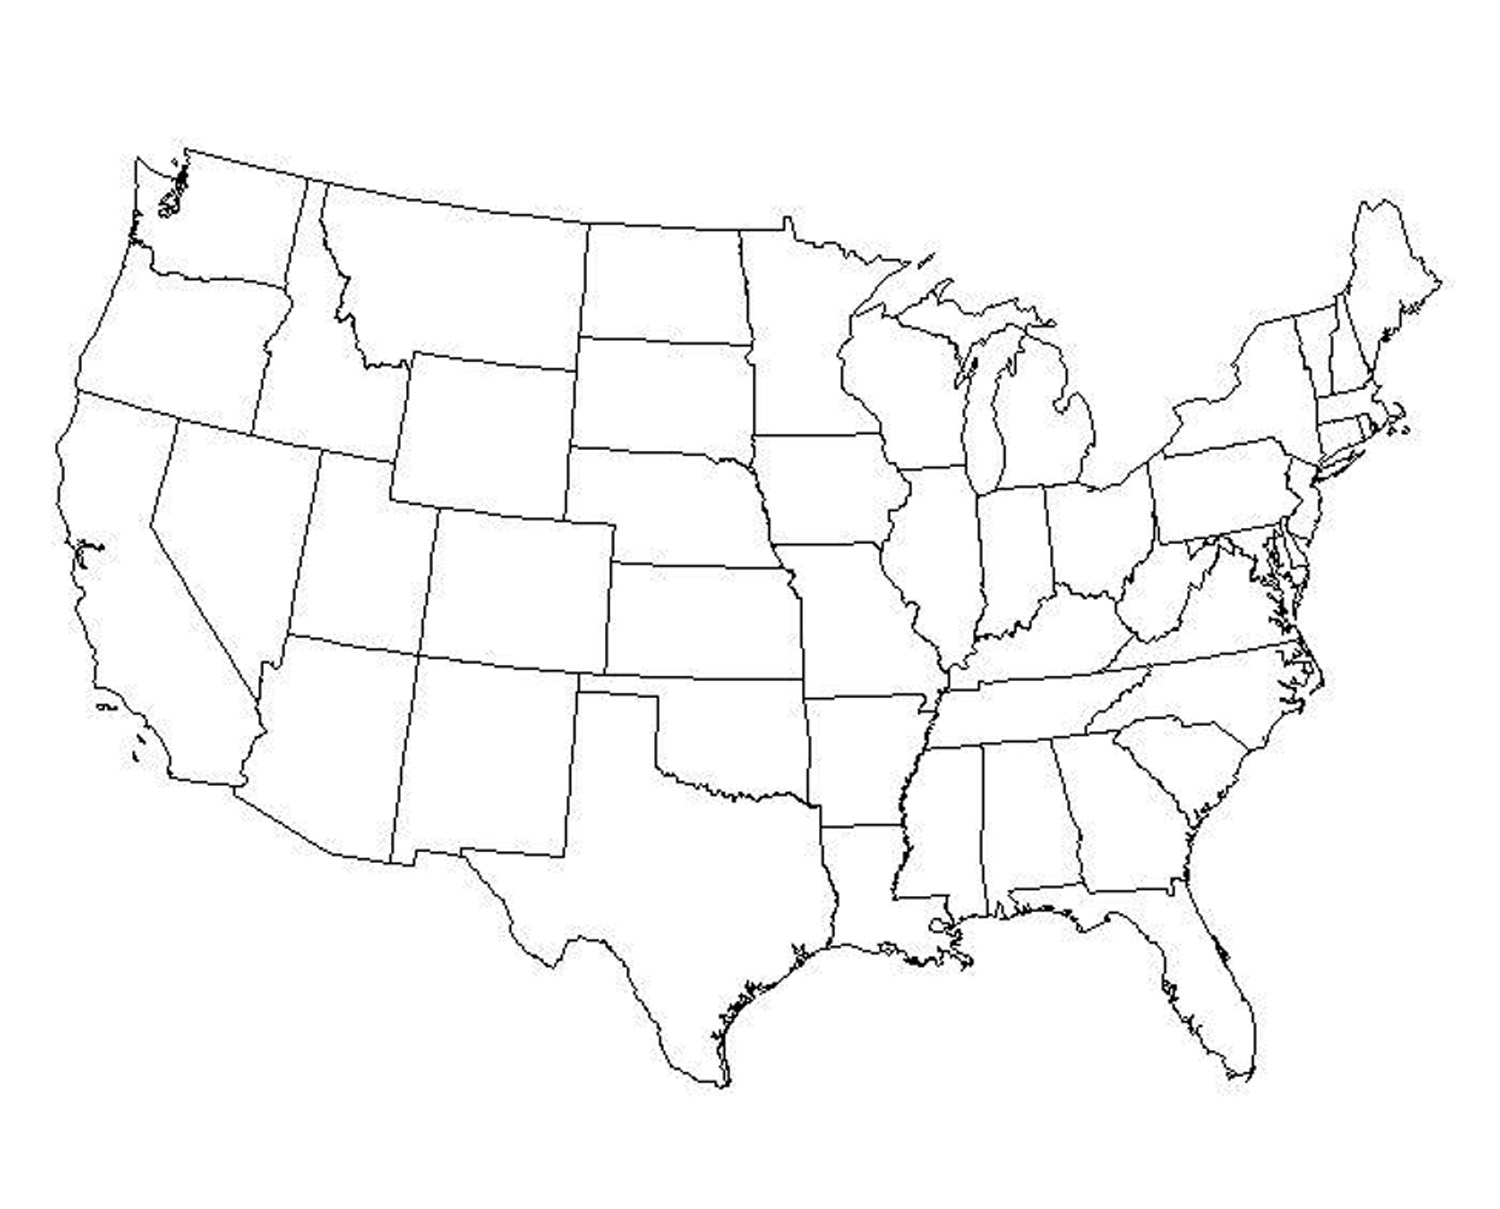 Best Image Of Diagram Blank Us Map Large Download More Maps - Blank map of usa large